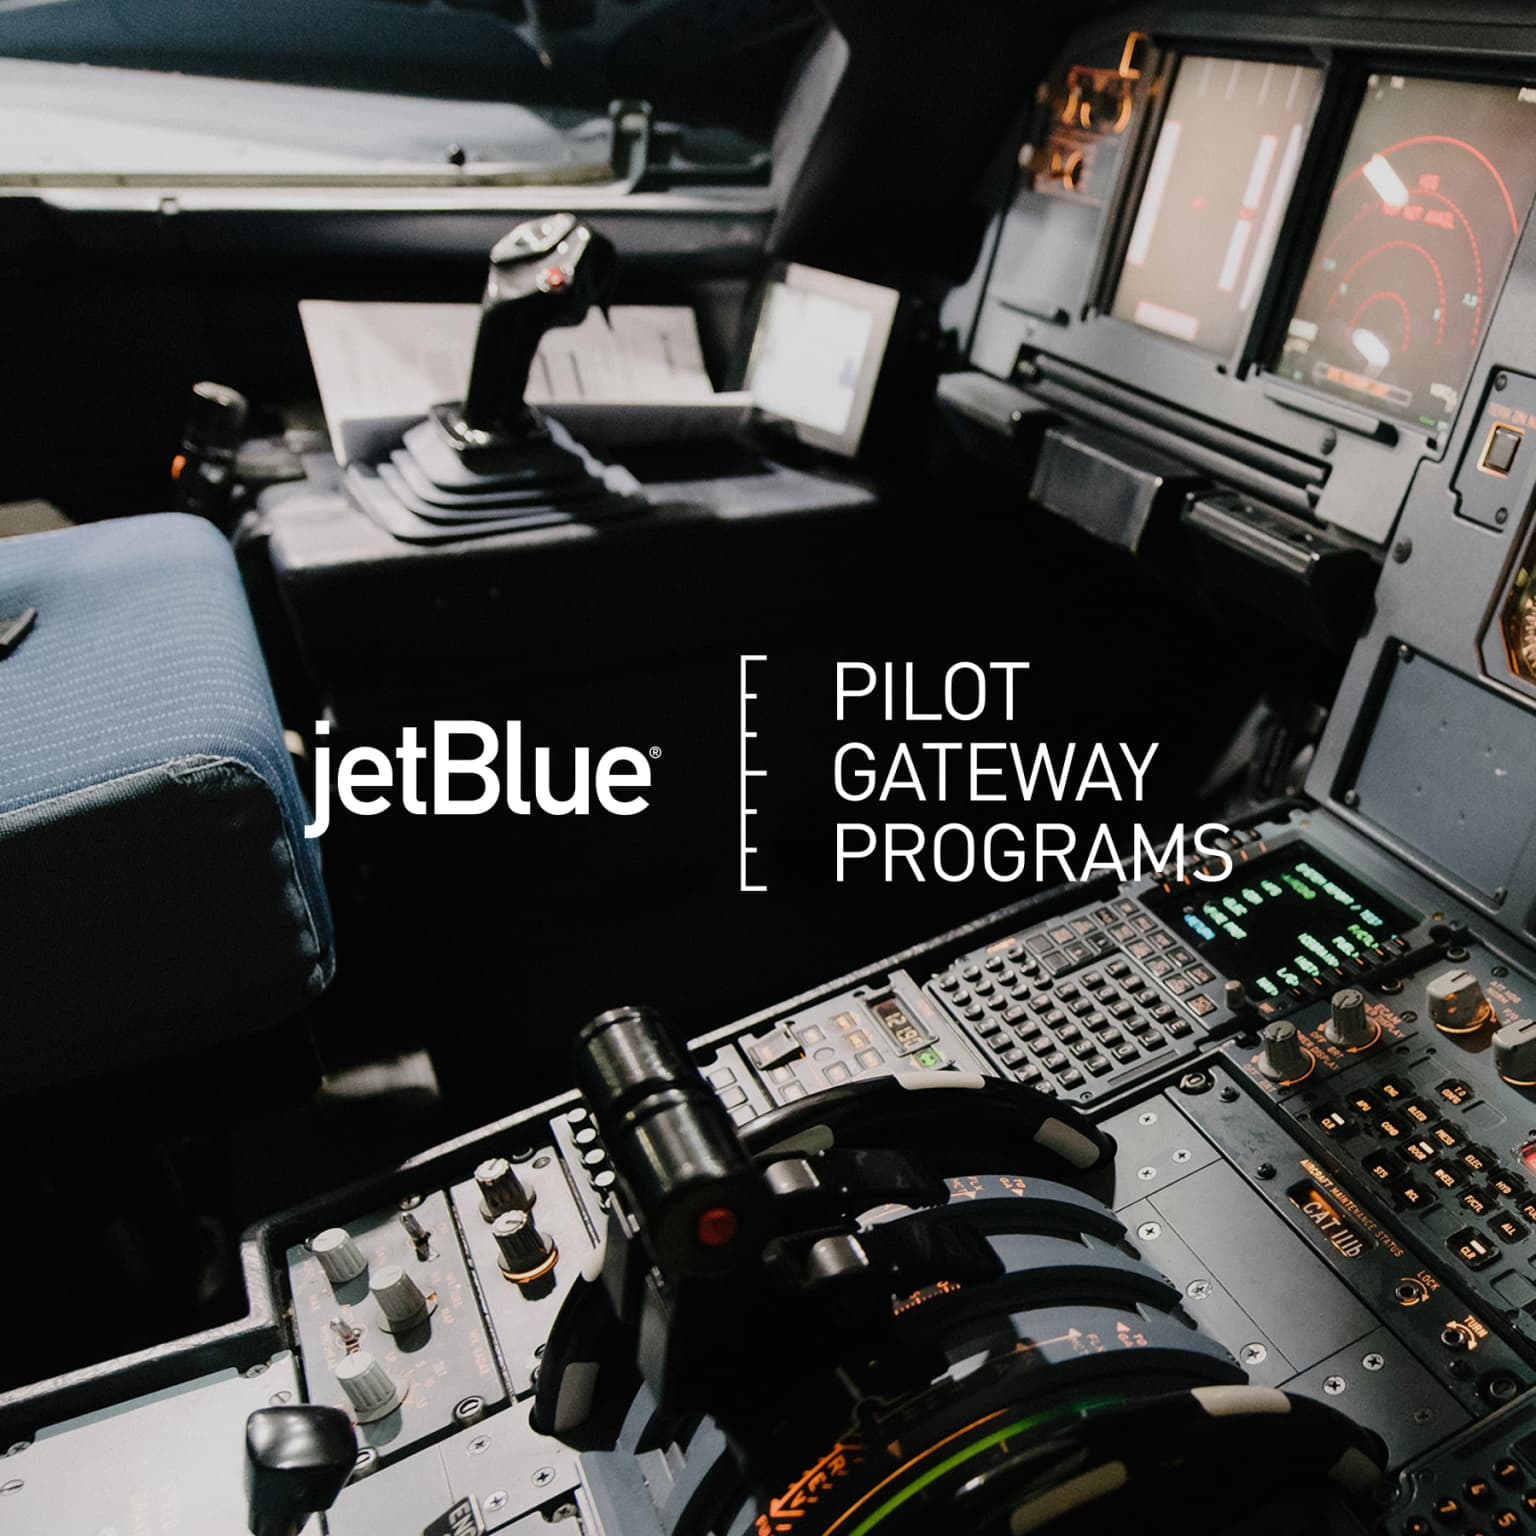 Pilot Gateway Programs Branding & Website